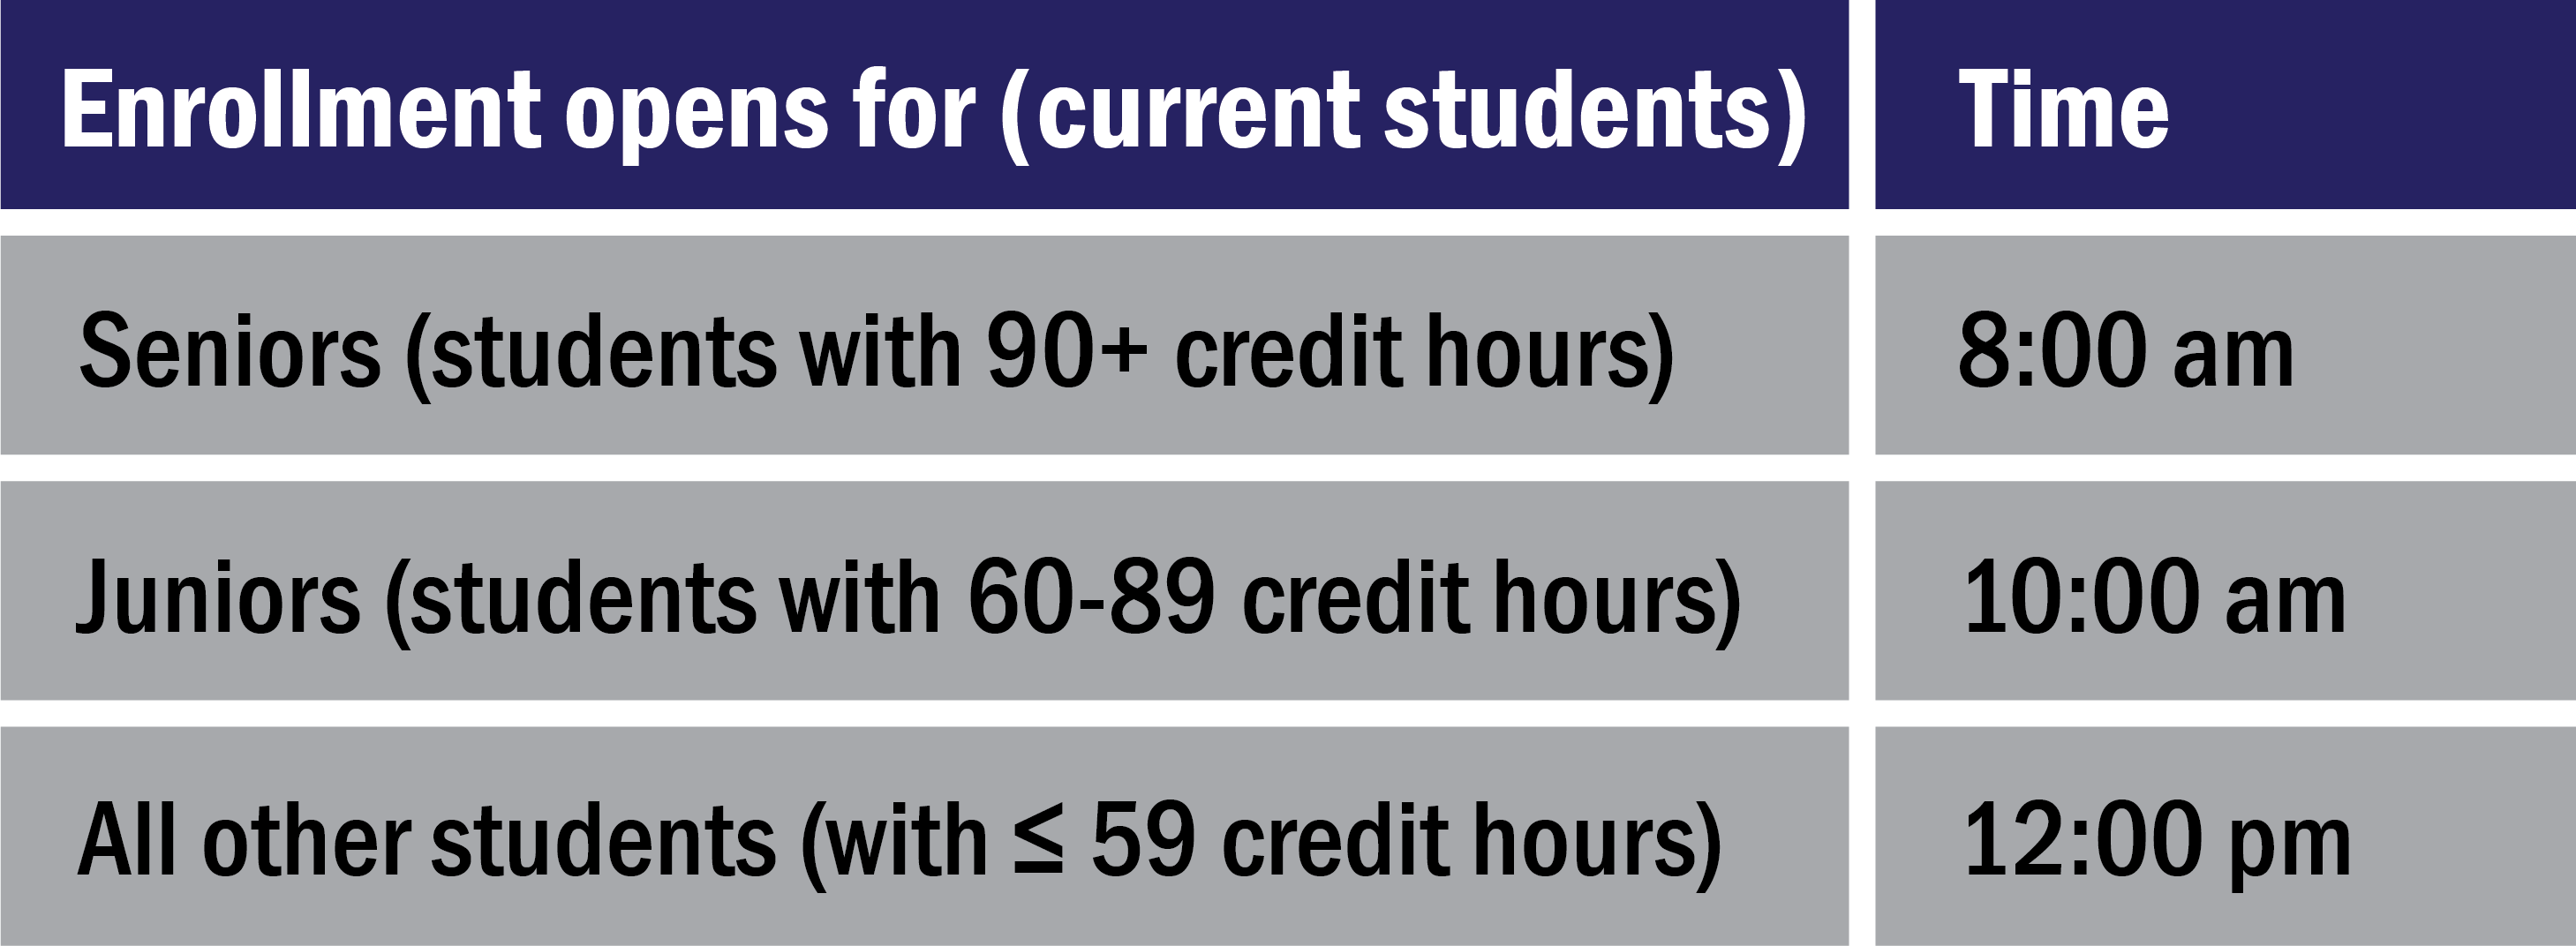 May and Summer enrollment appointments: Seniors (90+ credit hours) at 8am; Juniors (60-89 credit hours) at 10am; all others (59 hours or less) at 12pm